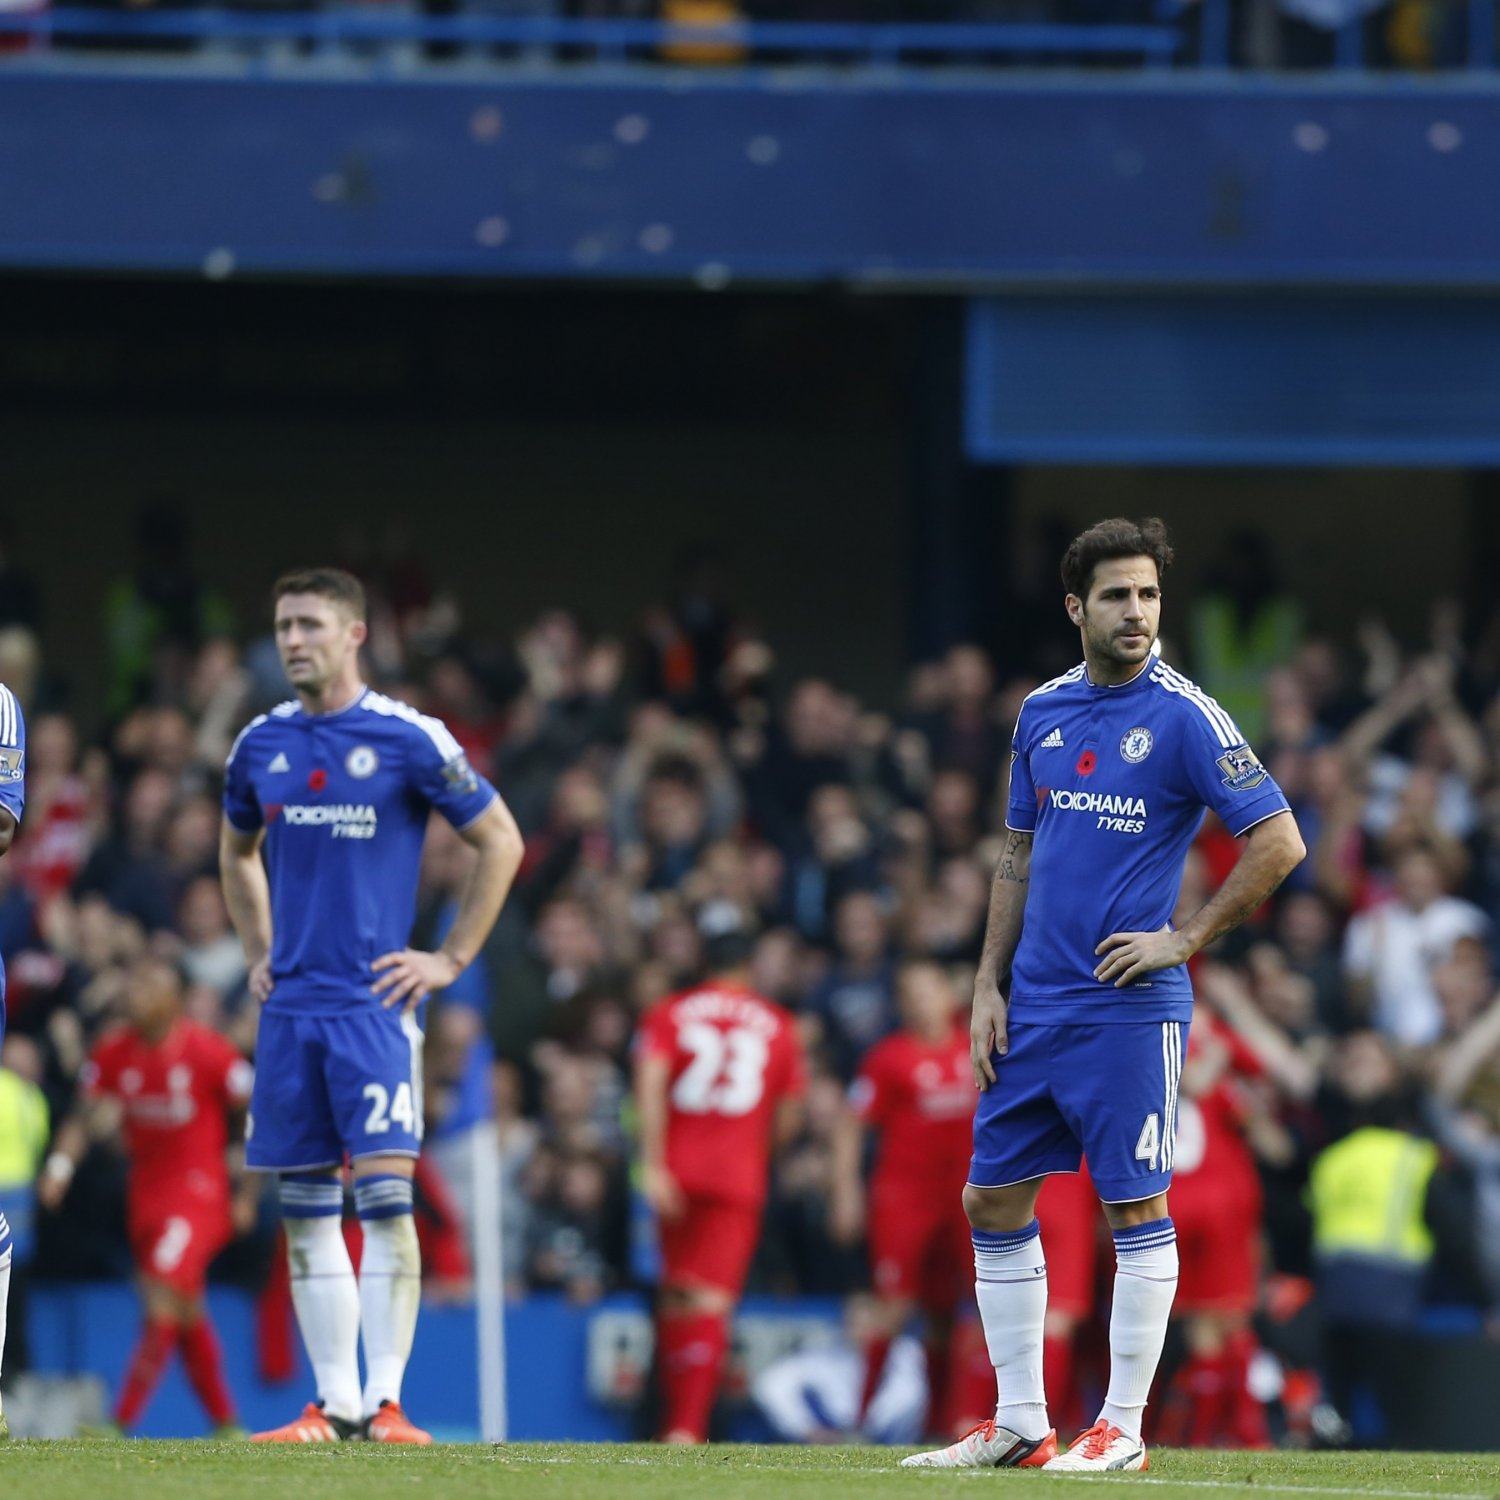 Psg Vs Chelsea Live Score Highlights From Champions: Chelsea Vs. Dynamo Kiev: Live Score, Highlights From